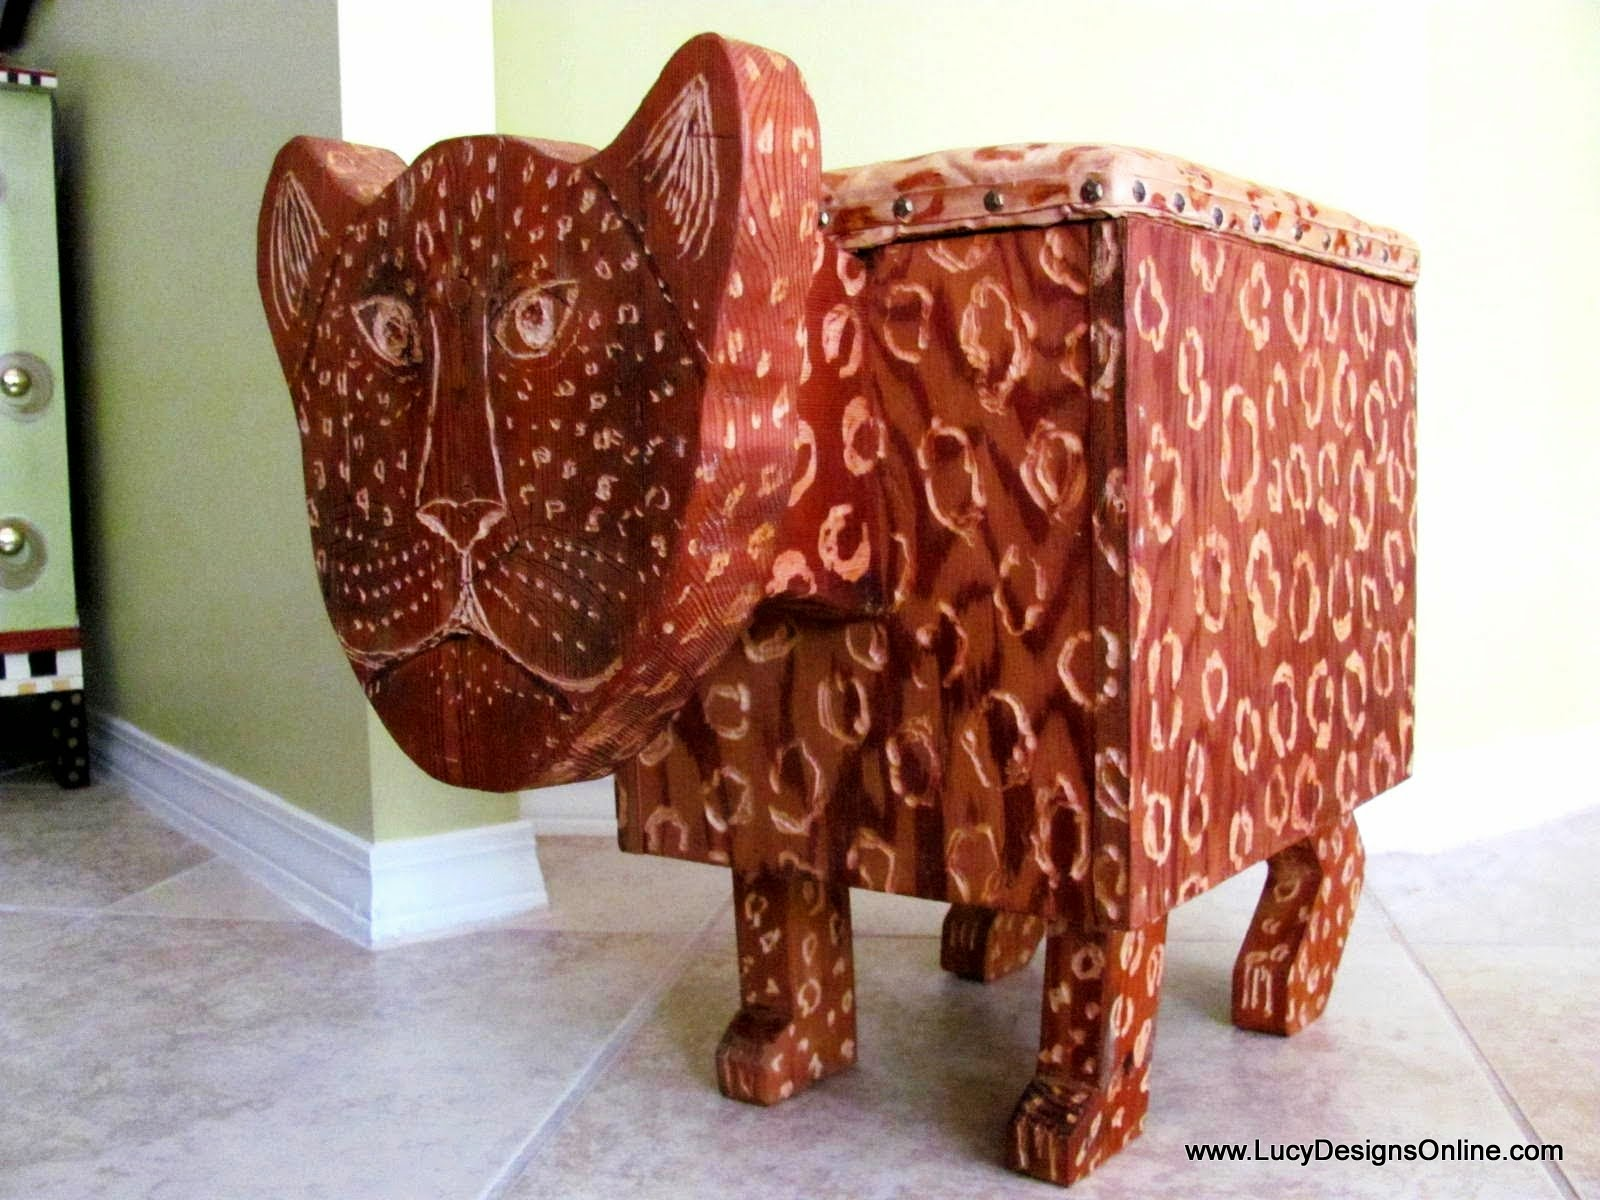 whimsical carved cheetah, leopard bench seat